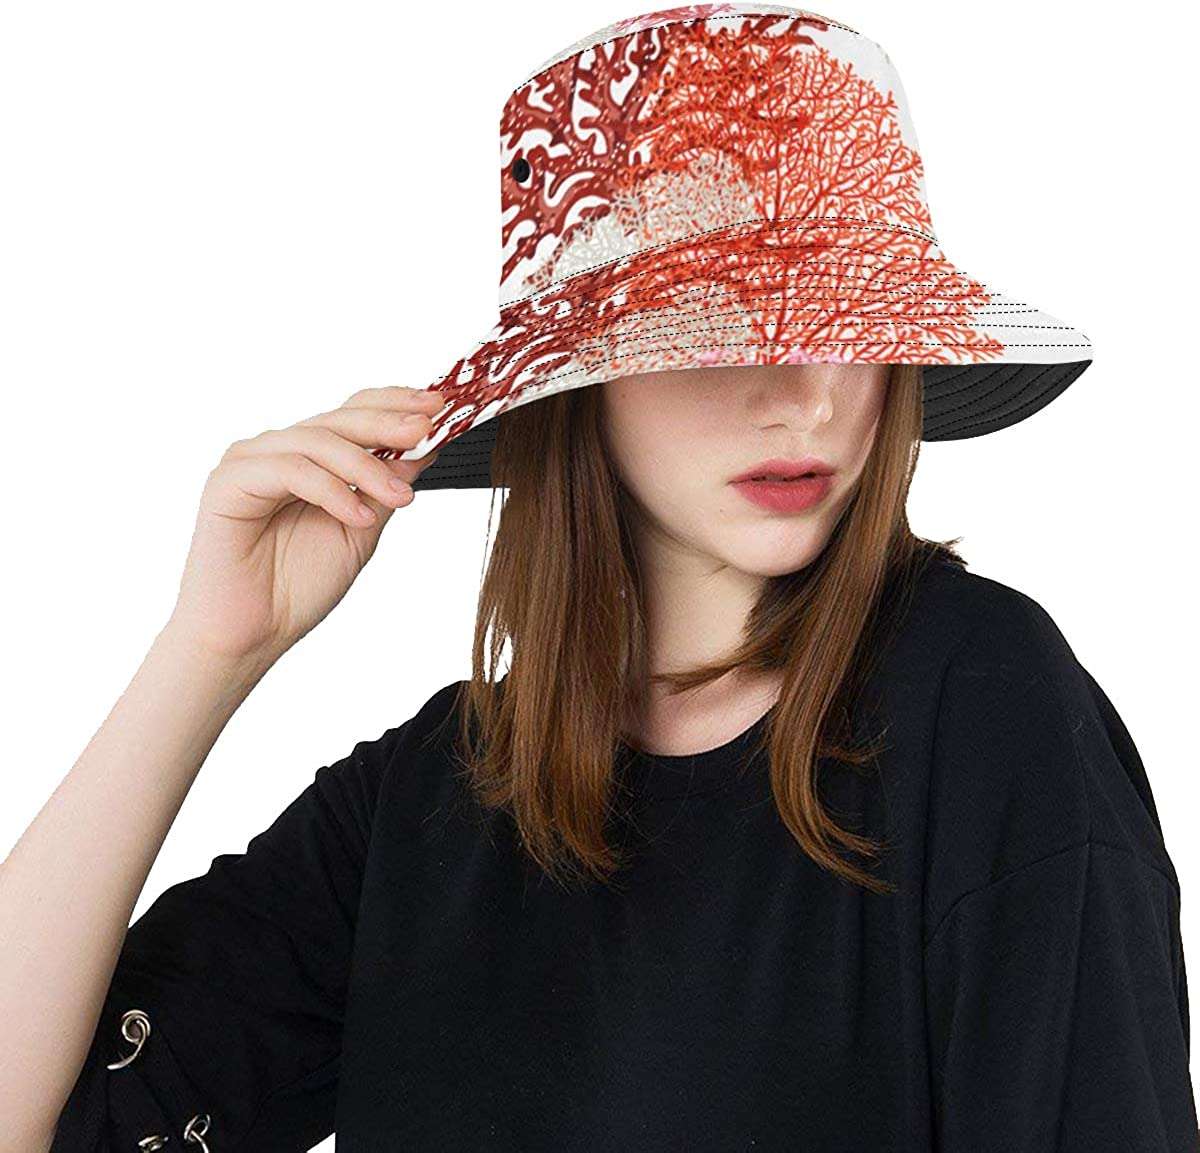 Bright Color Coral Summer Unisex Fishing Sun Top Bucket Hats for Kid Teens Women and Men with Packable Fisherman Cap for Outdoor Baseball Sport Picnic